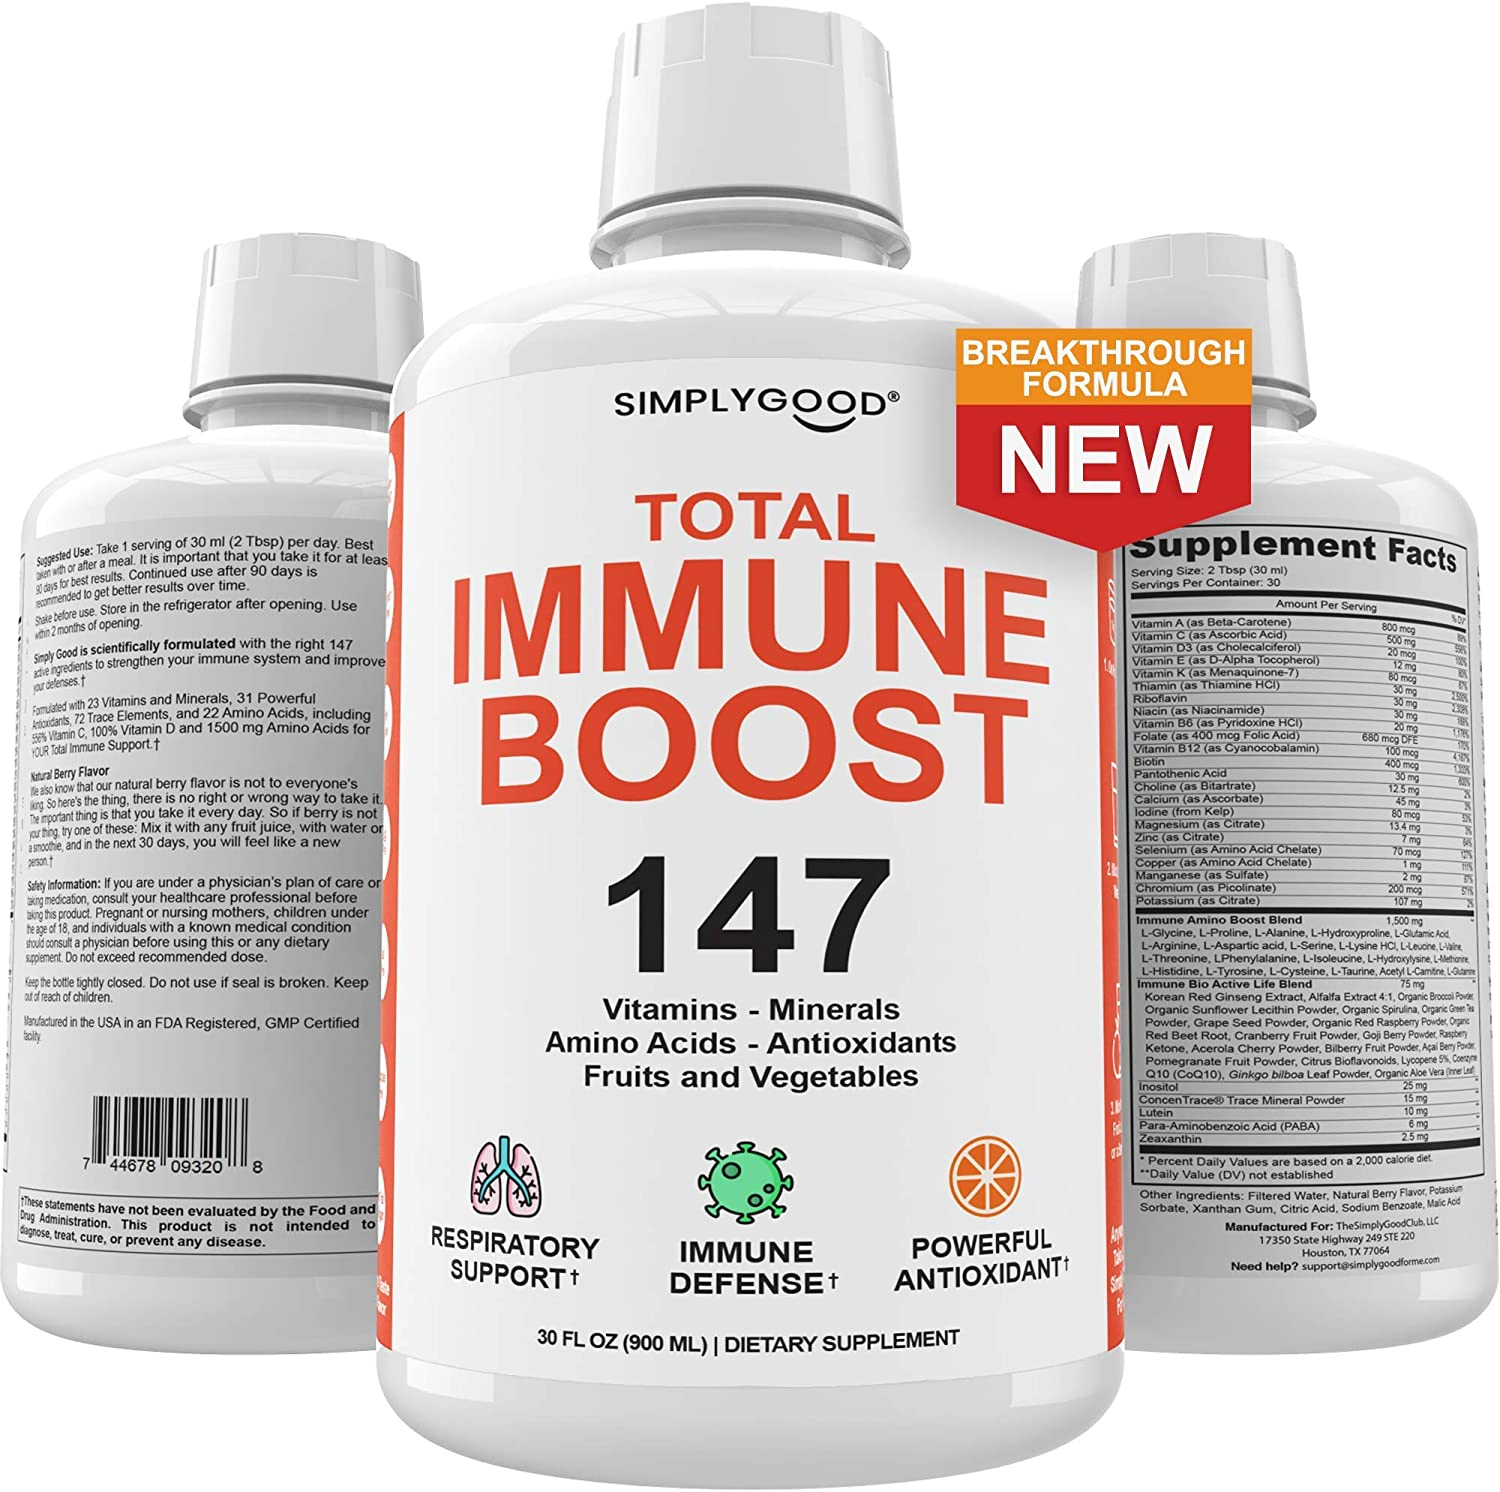 Immune Booster Liquid Support with 147 Essential Vitamins Minerals Herbs and Amino Acids - Total Immunity and Defense Supplement to Strengthen Your Immune System & Support a Healthy Respiratory System